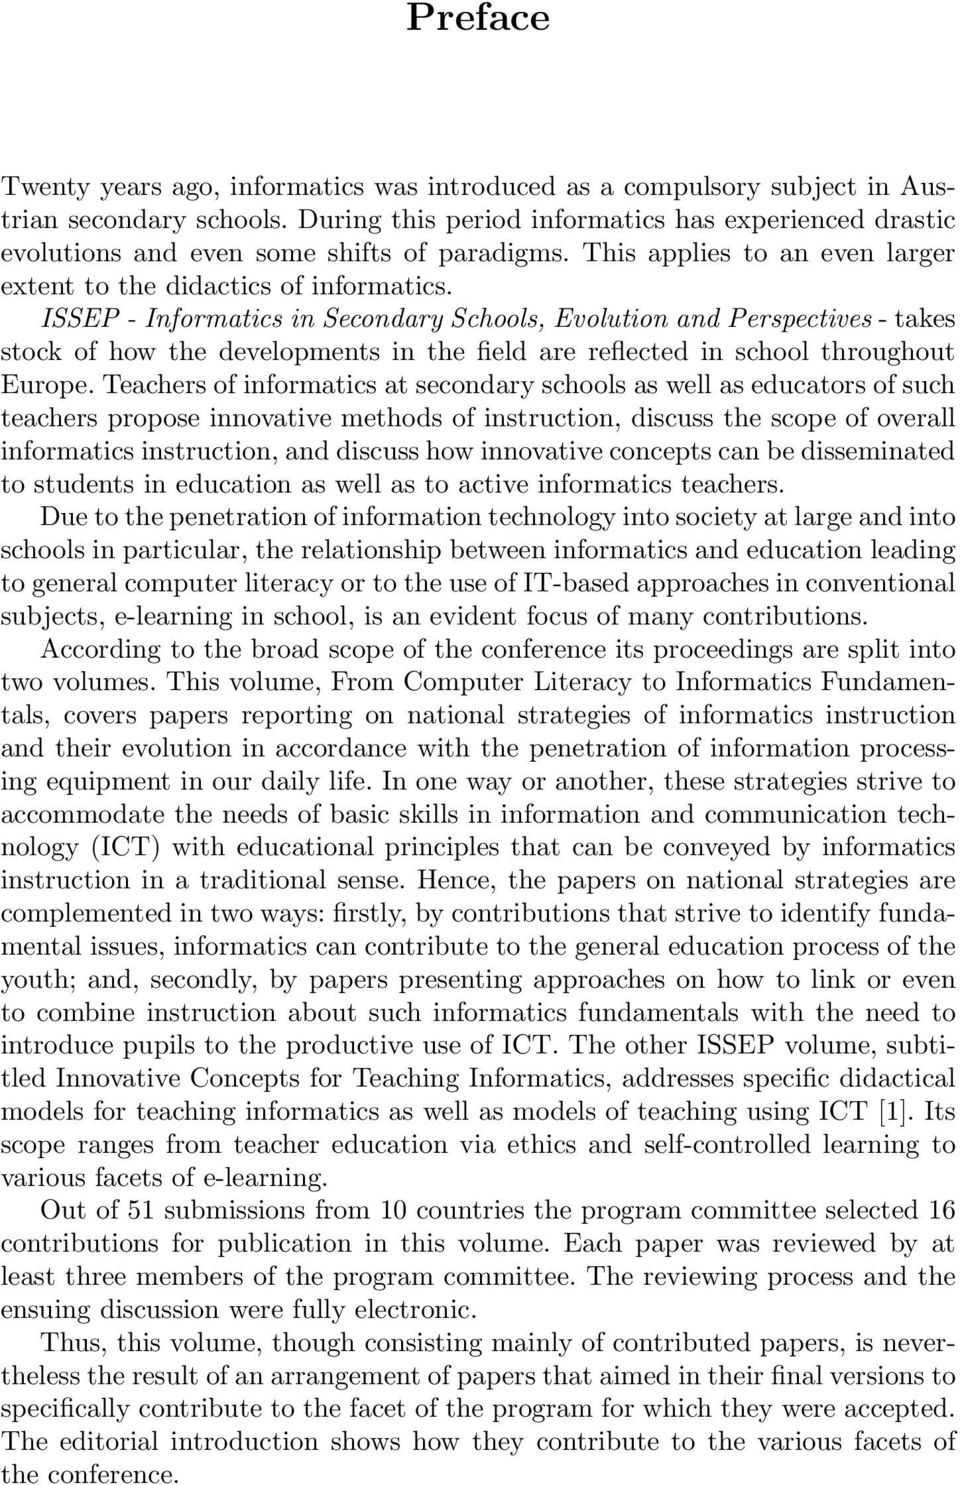 ISSEP - Informatics in Secondary Schools, Evolution and Perspectives - takes stock of how the developments in the field are reflected in school throughout Europe.